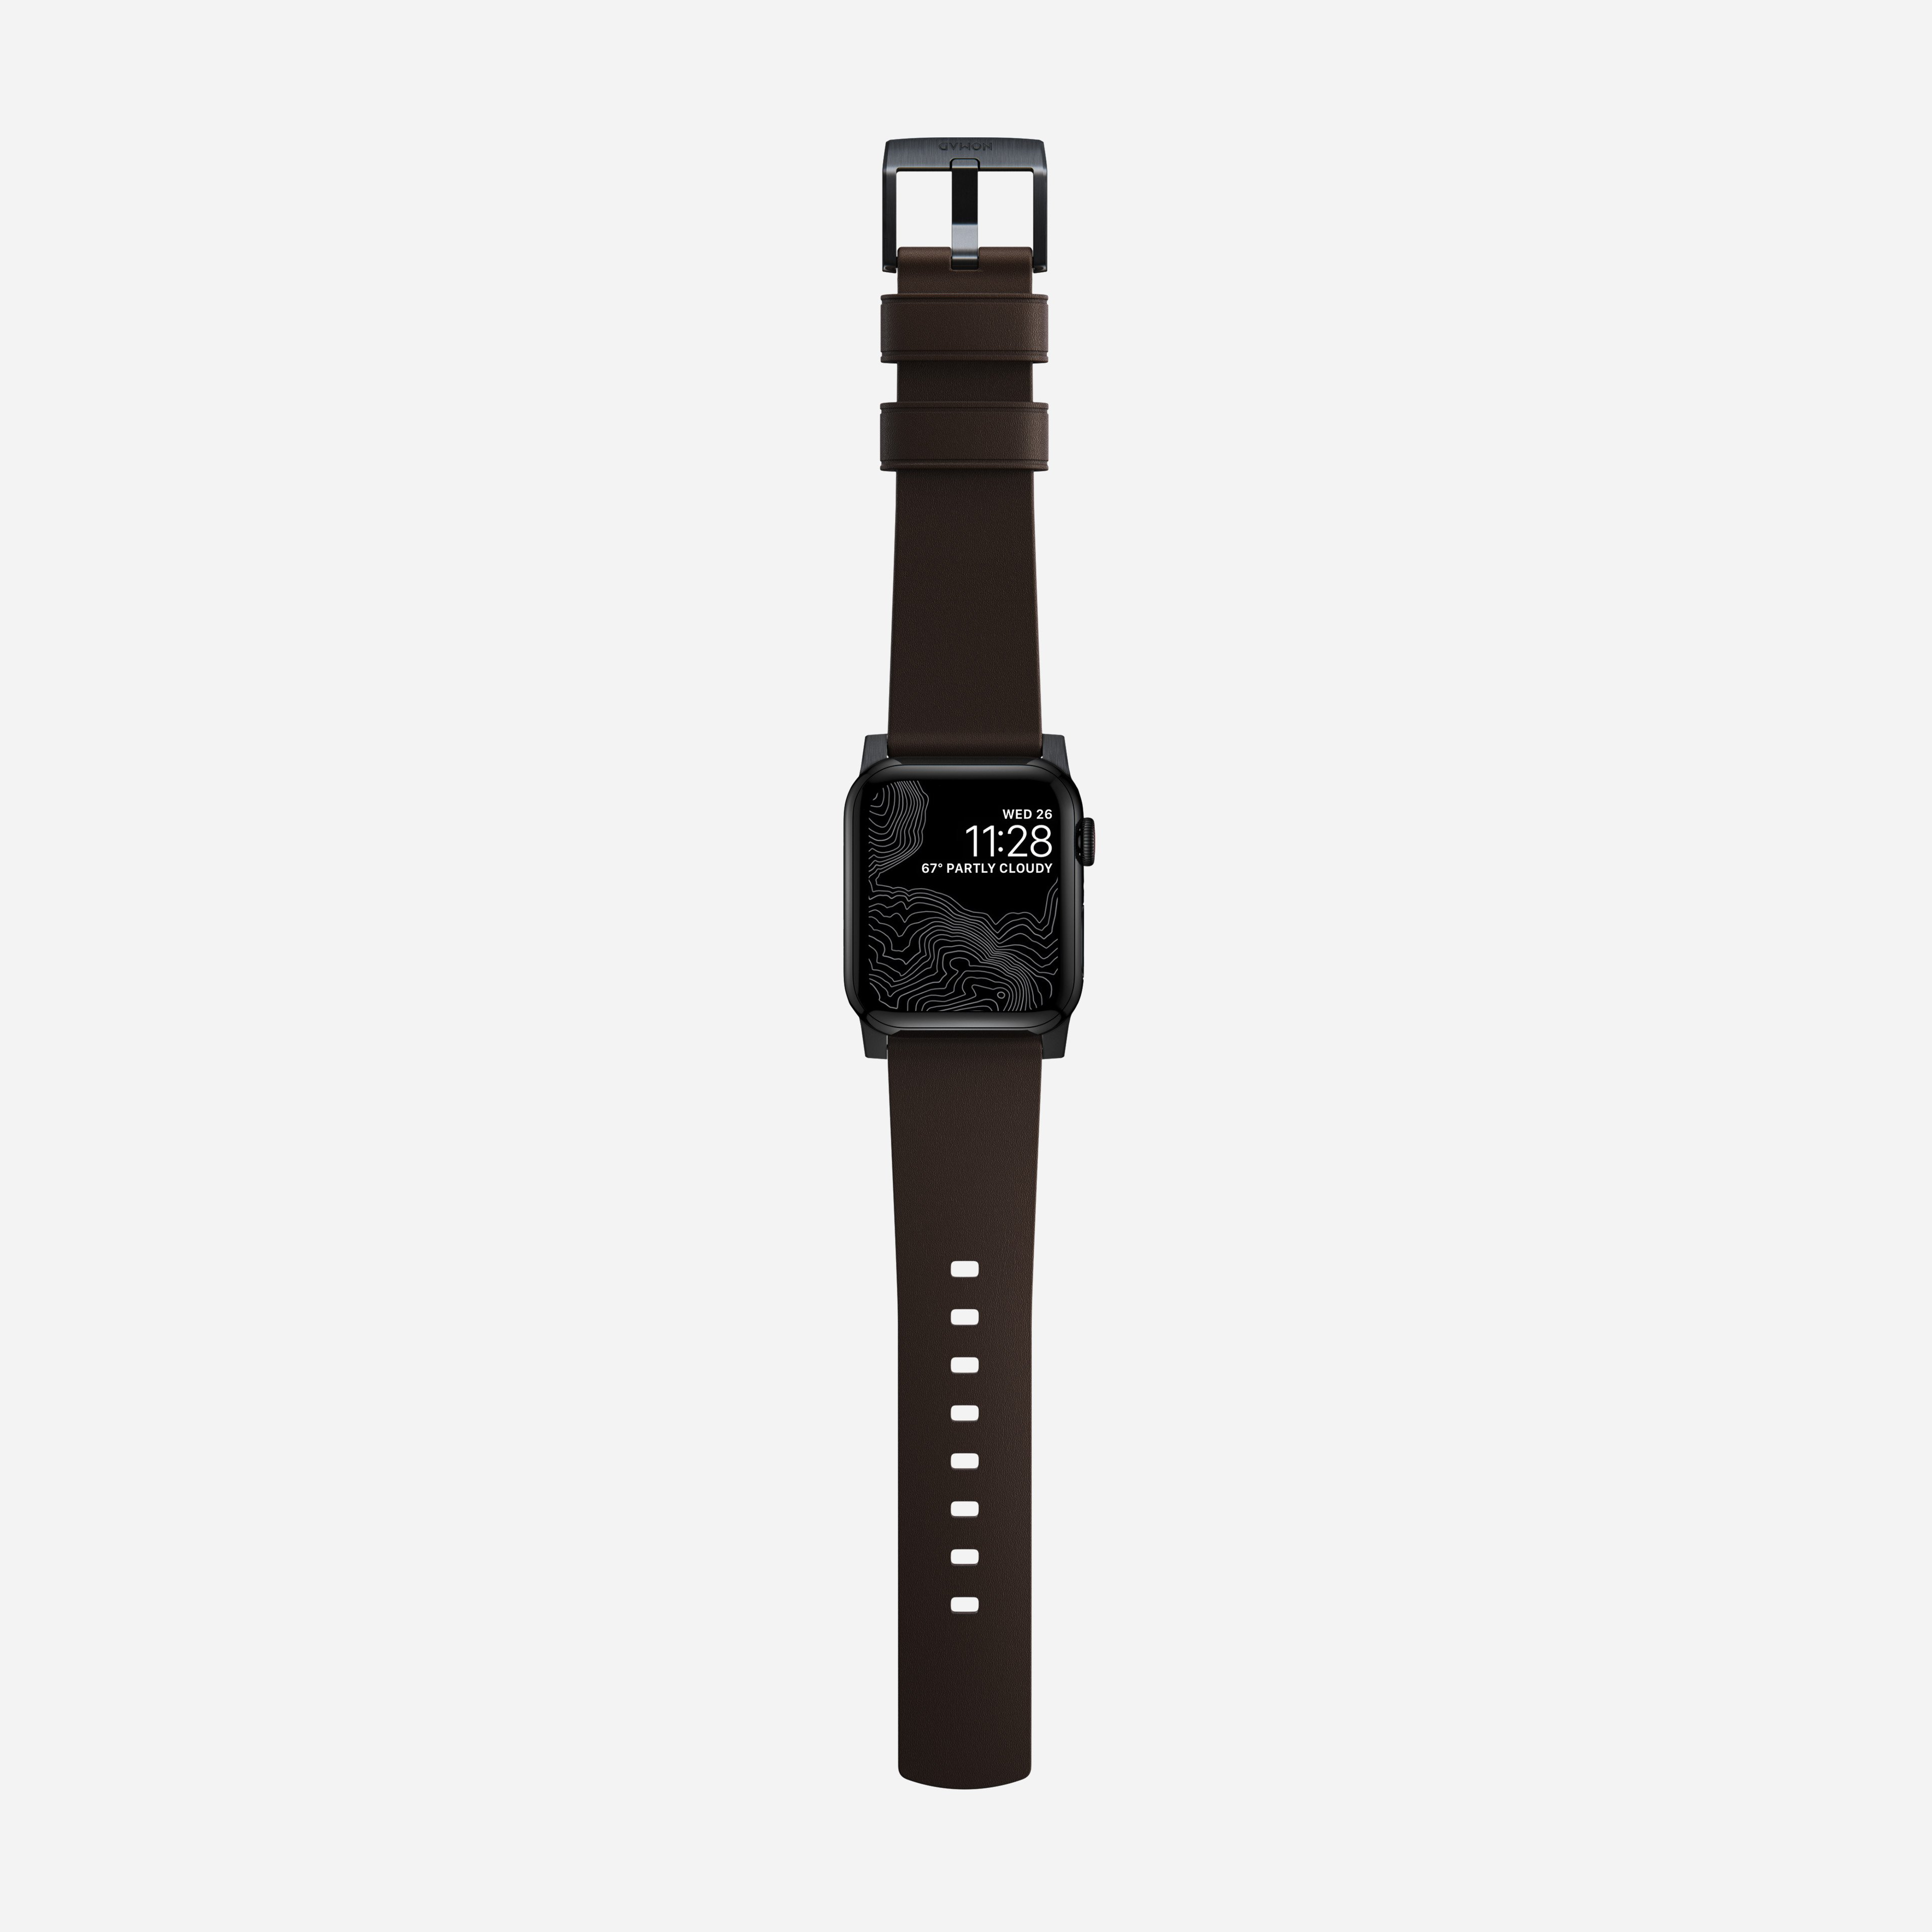 Active strap pro heinen leather classic brown black hardware 40mm